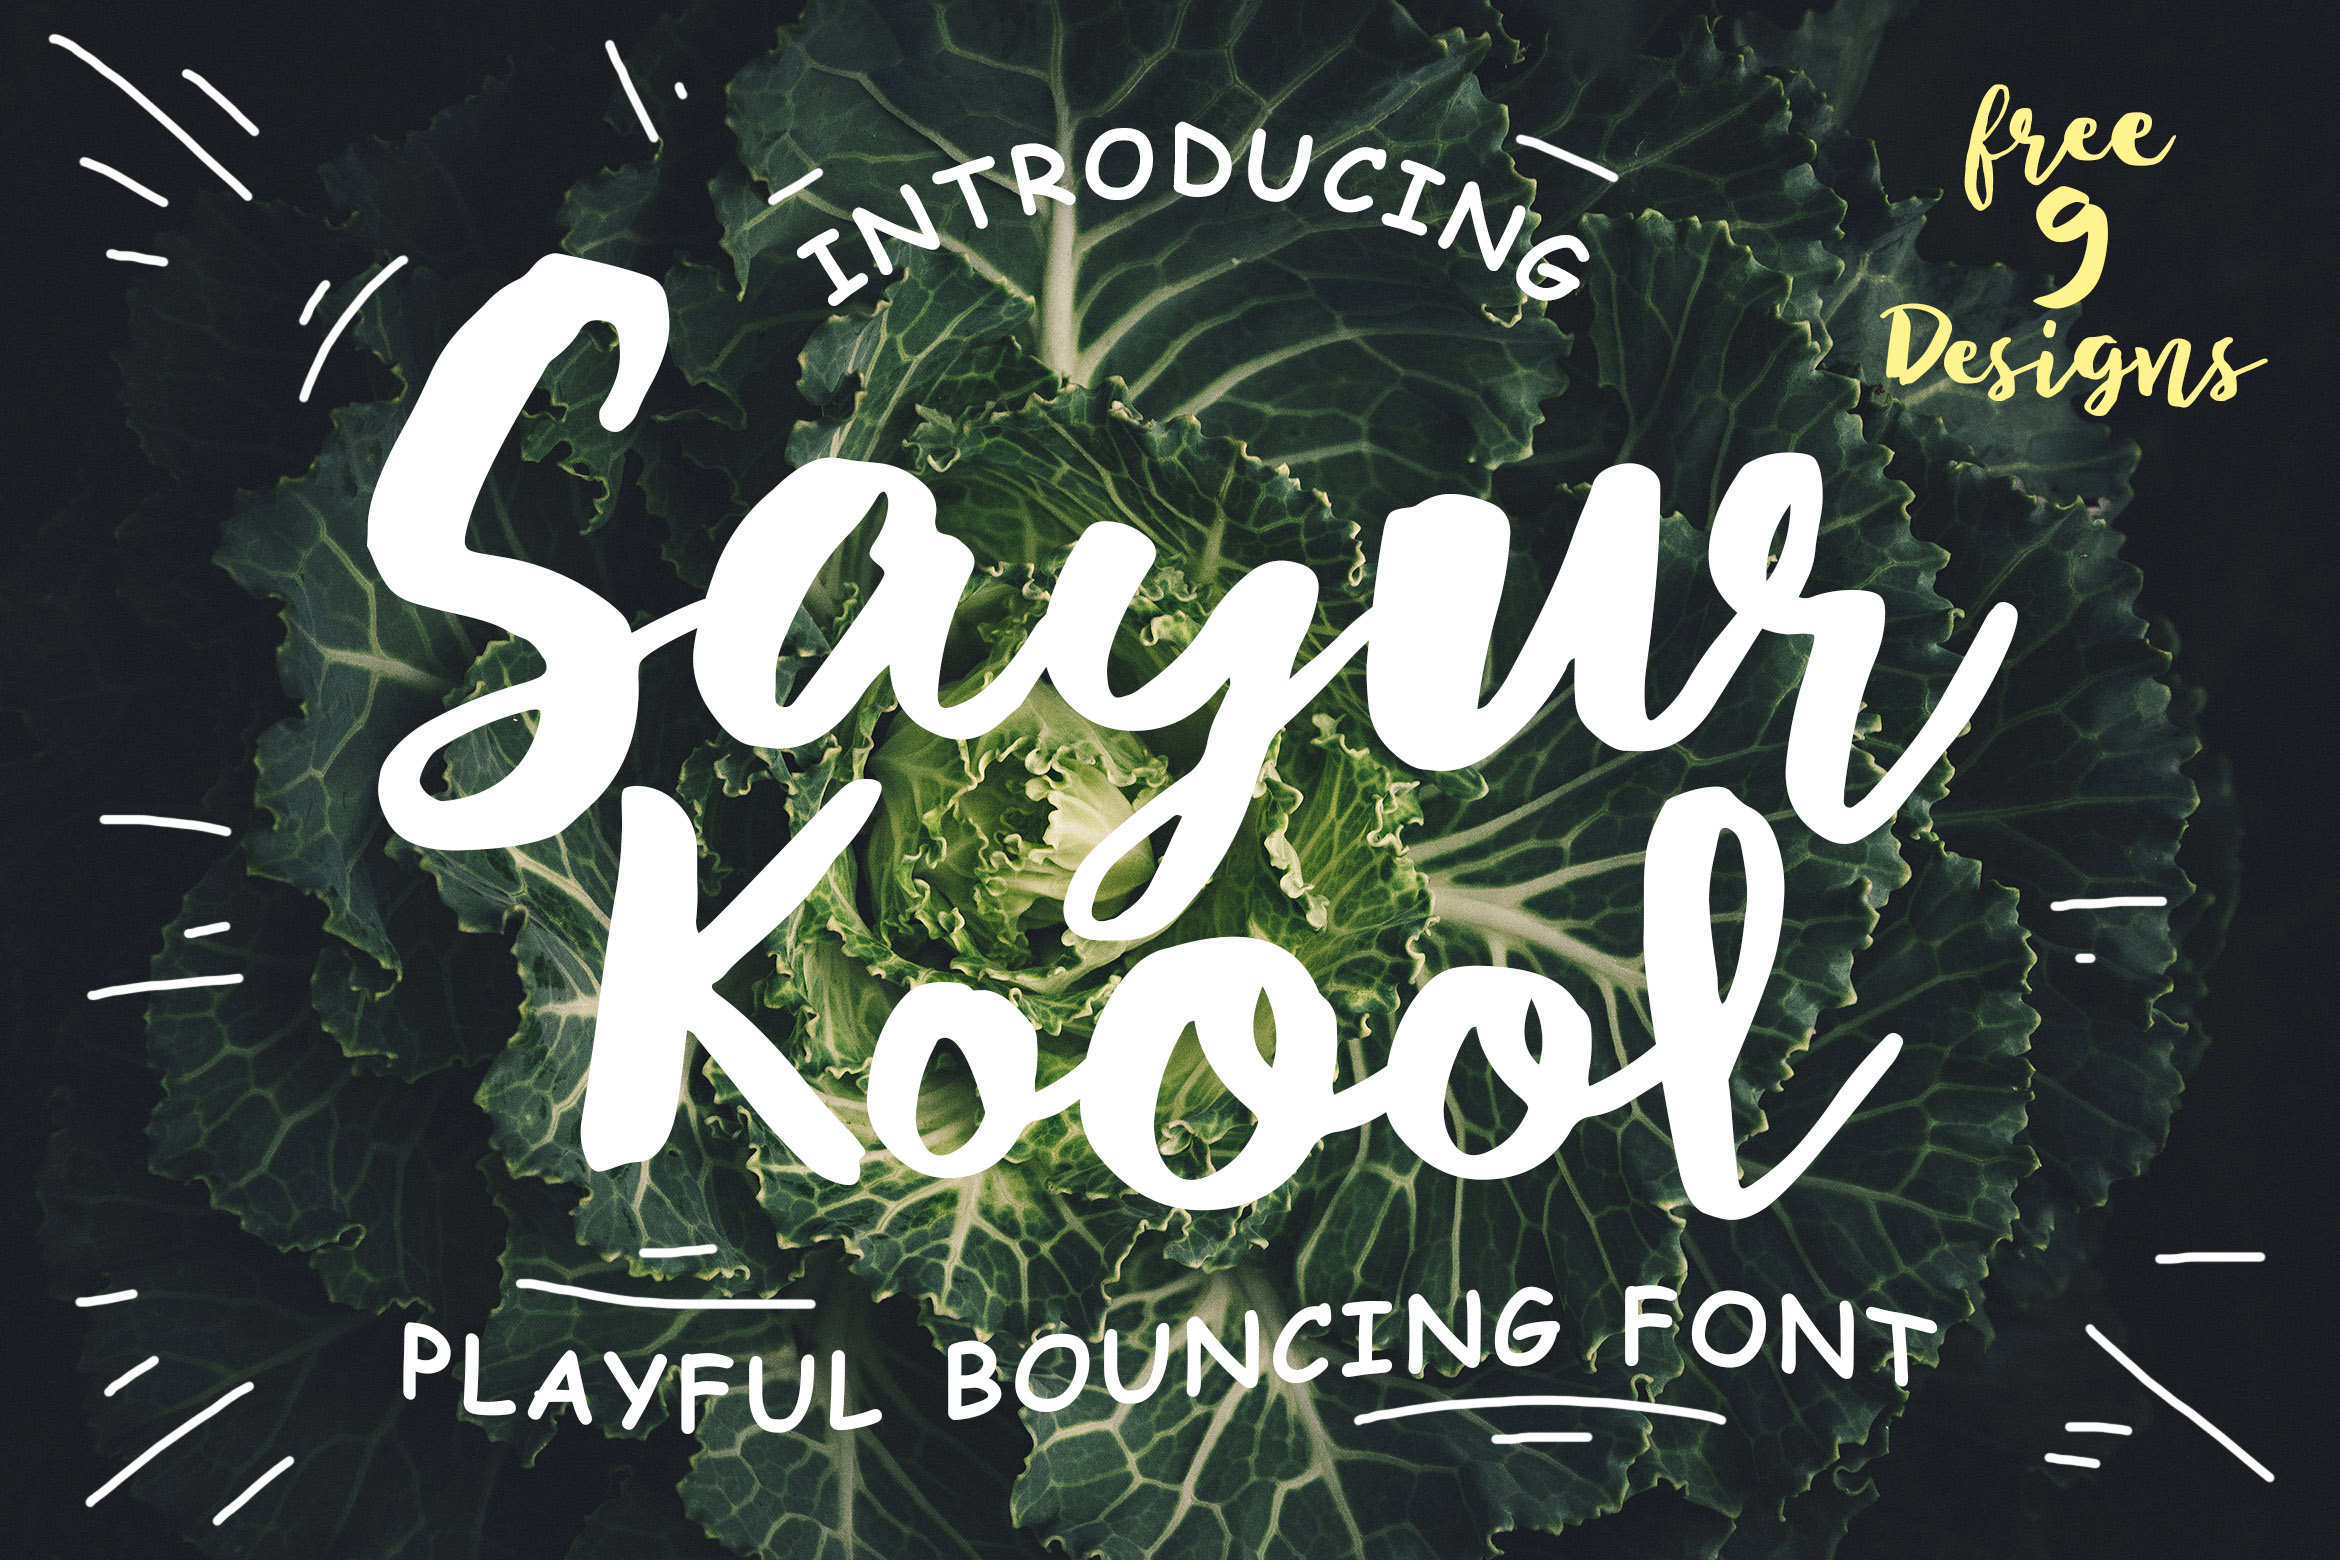 Sayur Koool and Bonus 9 Editable Designs example image 1